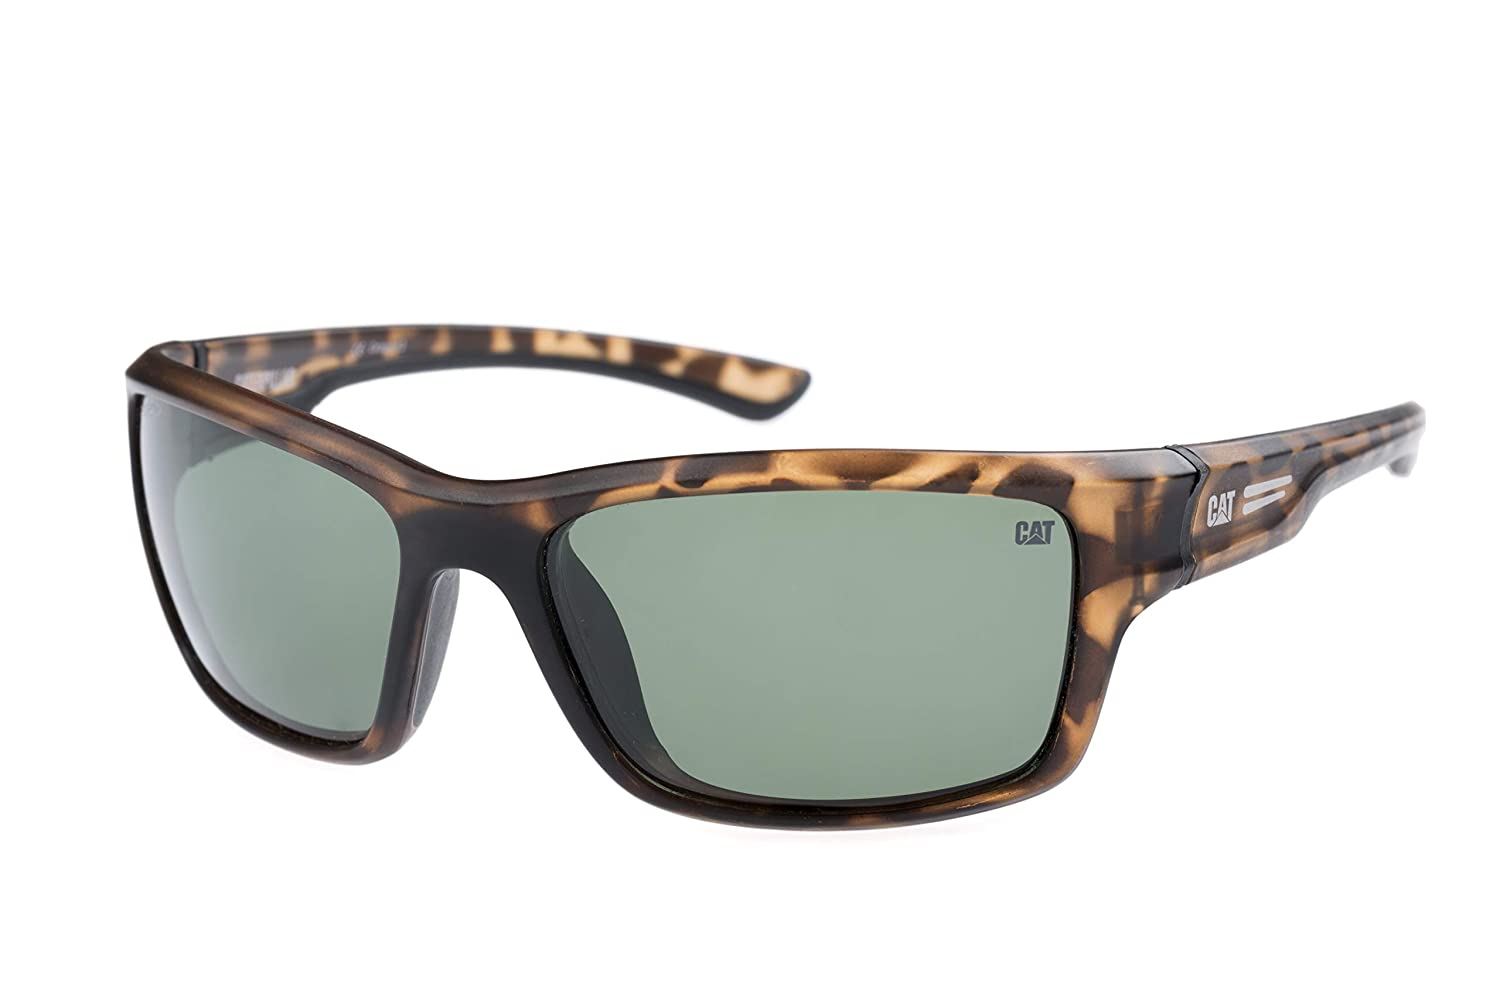 Amazon.com: Caterpillar Ridge Gafas de sol polarizadas para ...